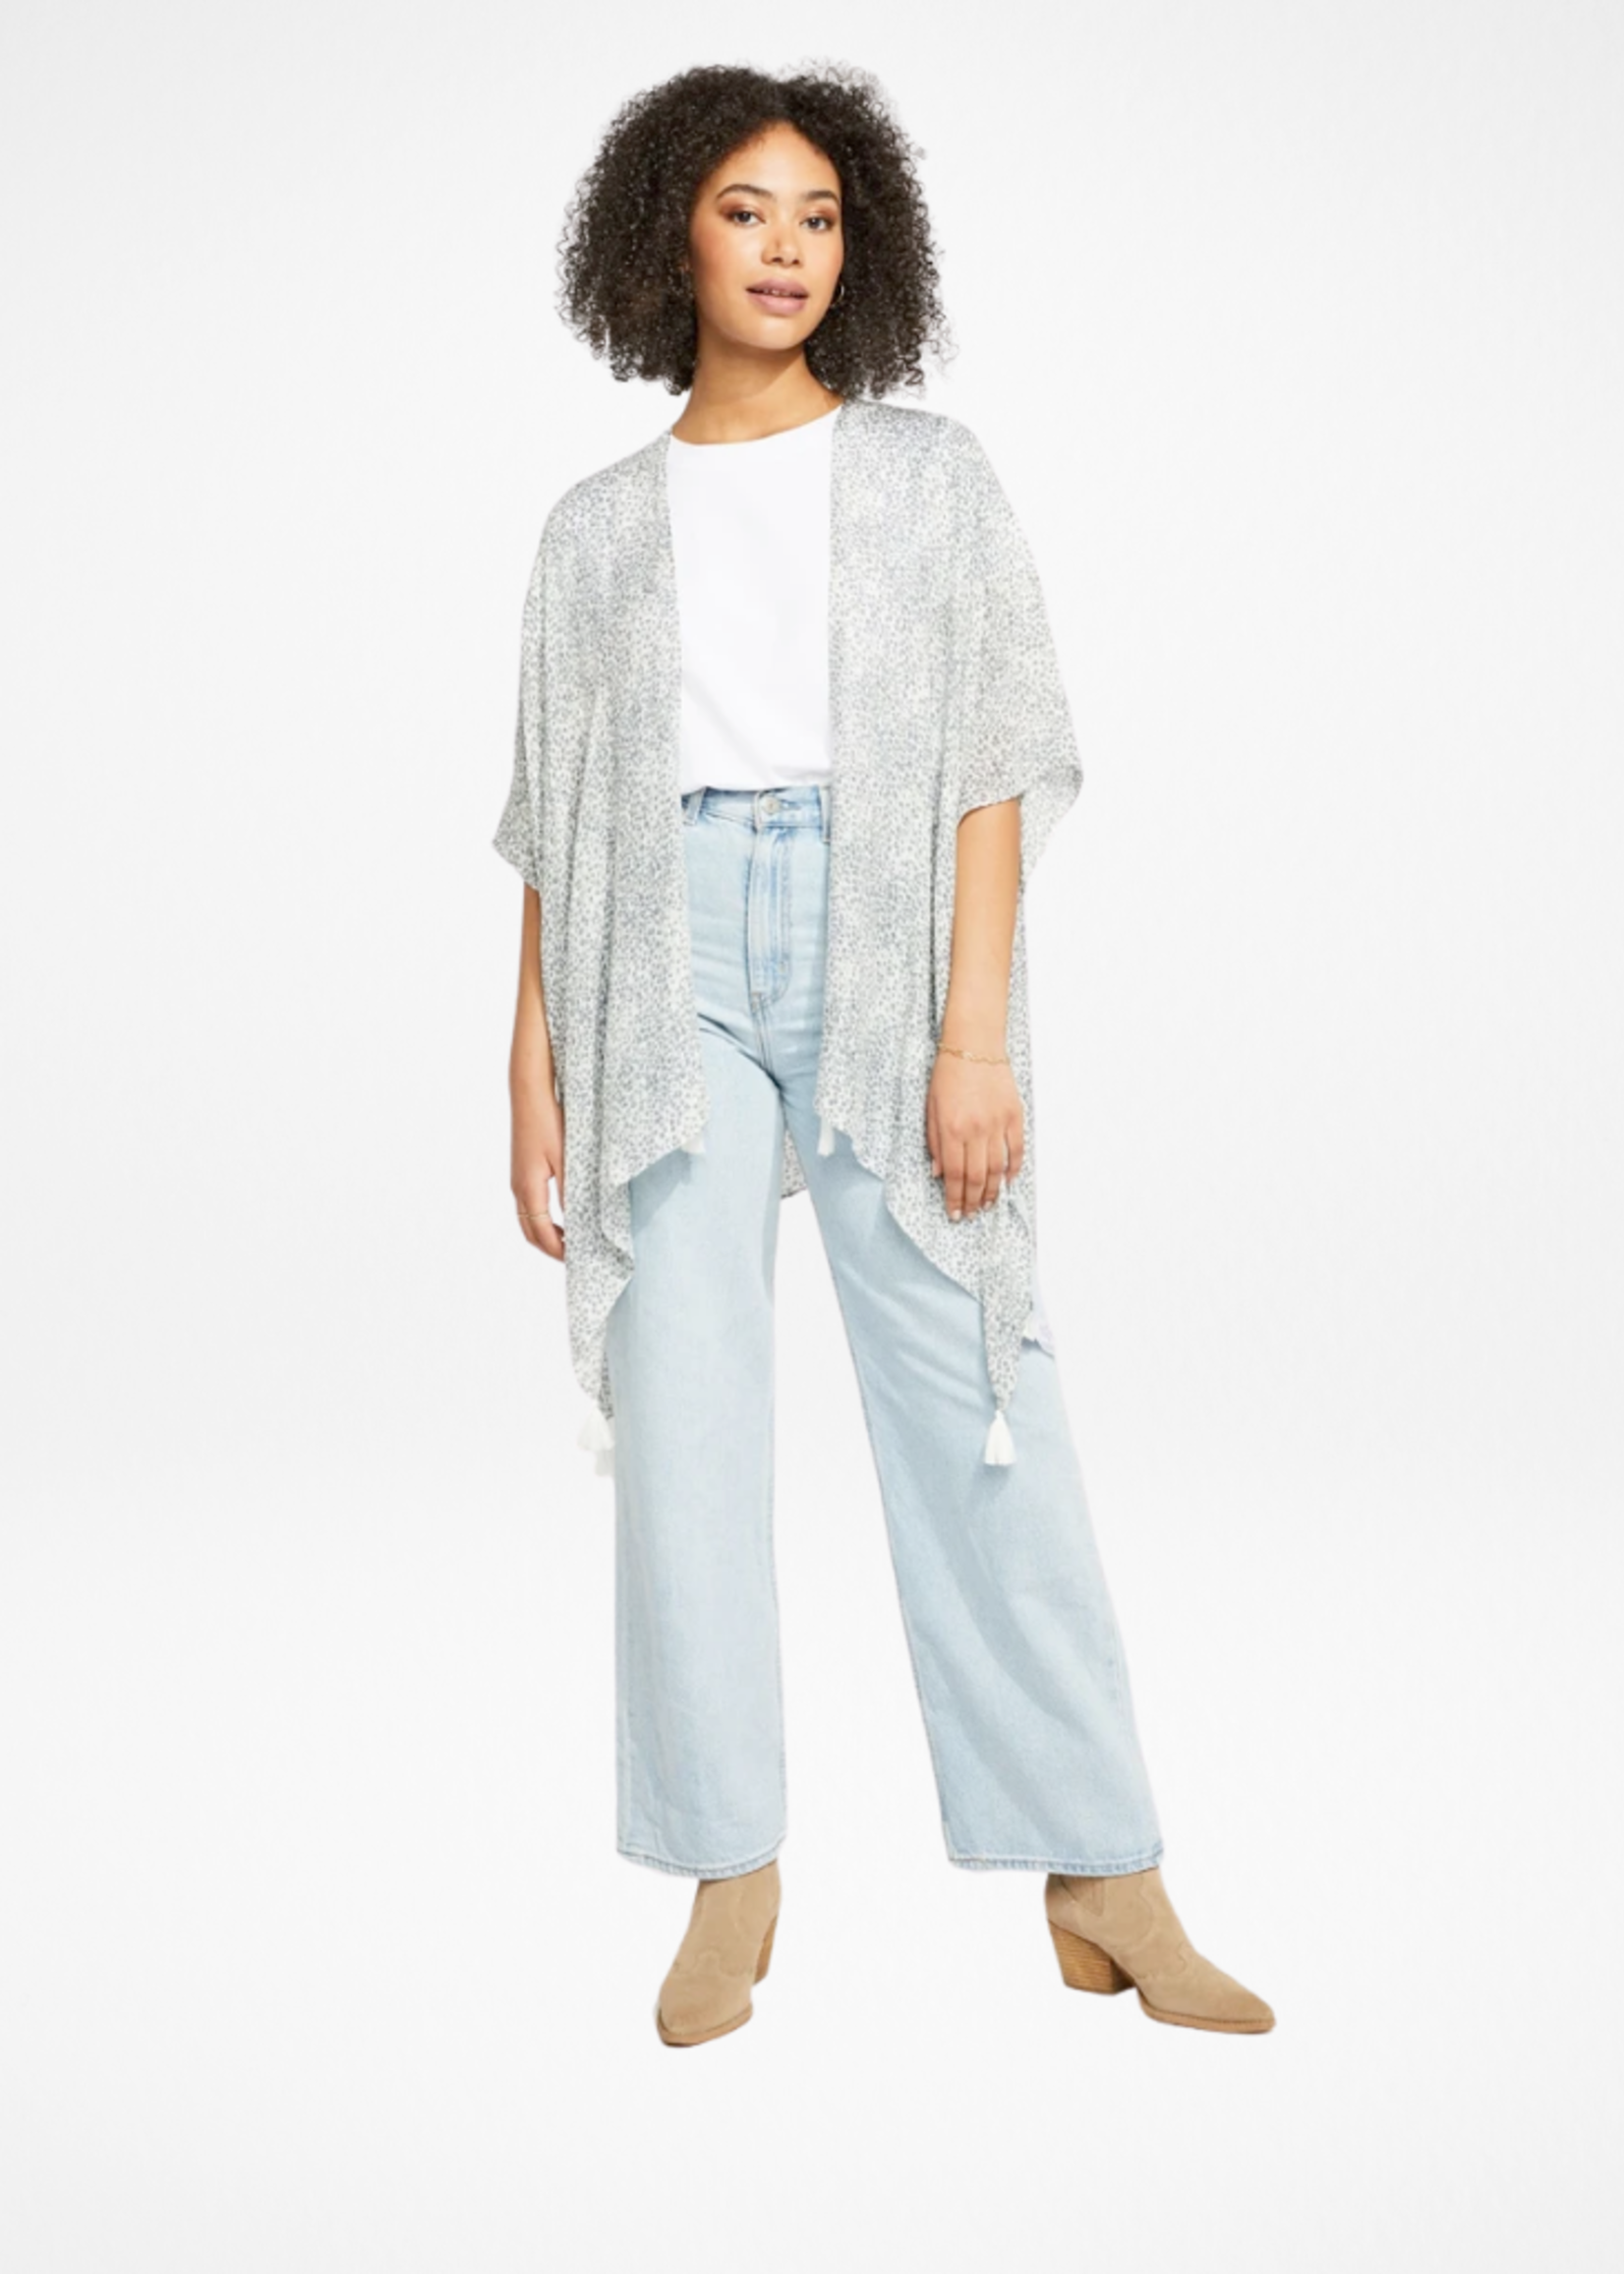 GENTLE FAWN 21 GF 8 LEDGER COVER-UP